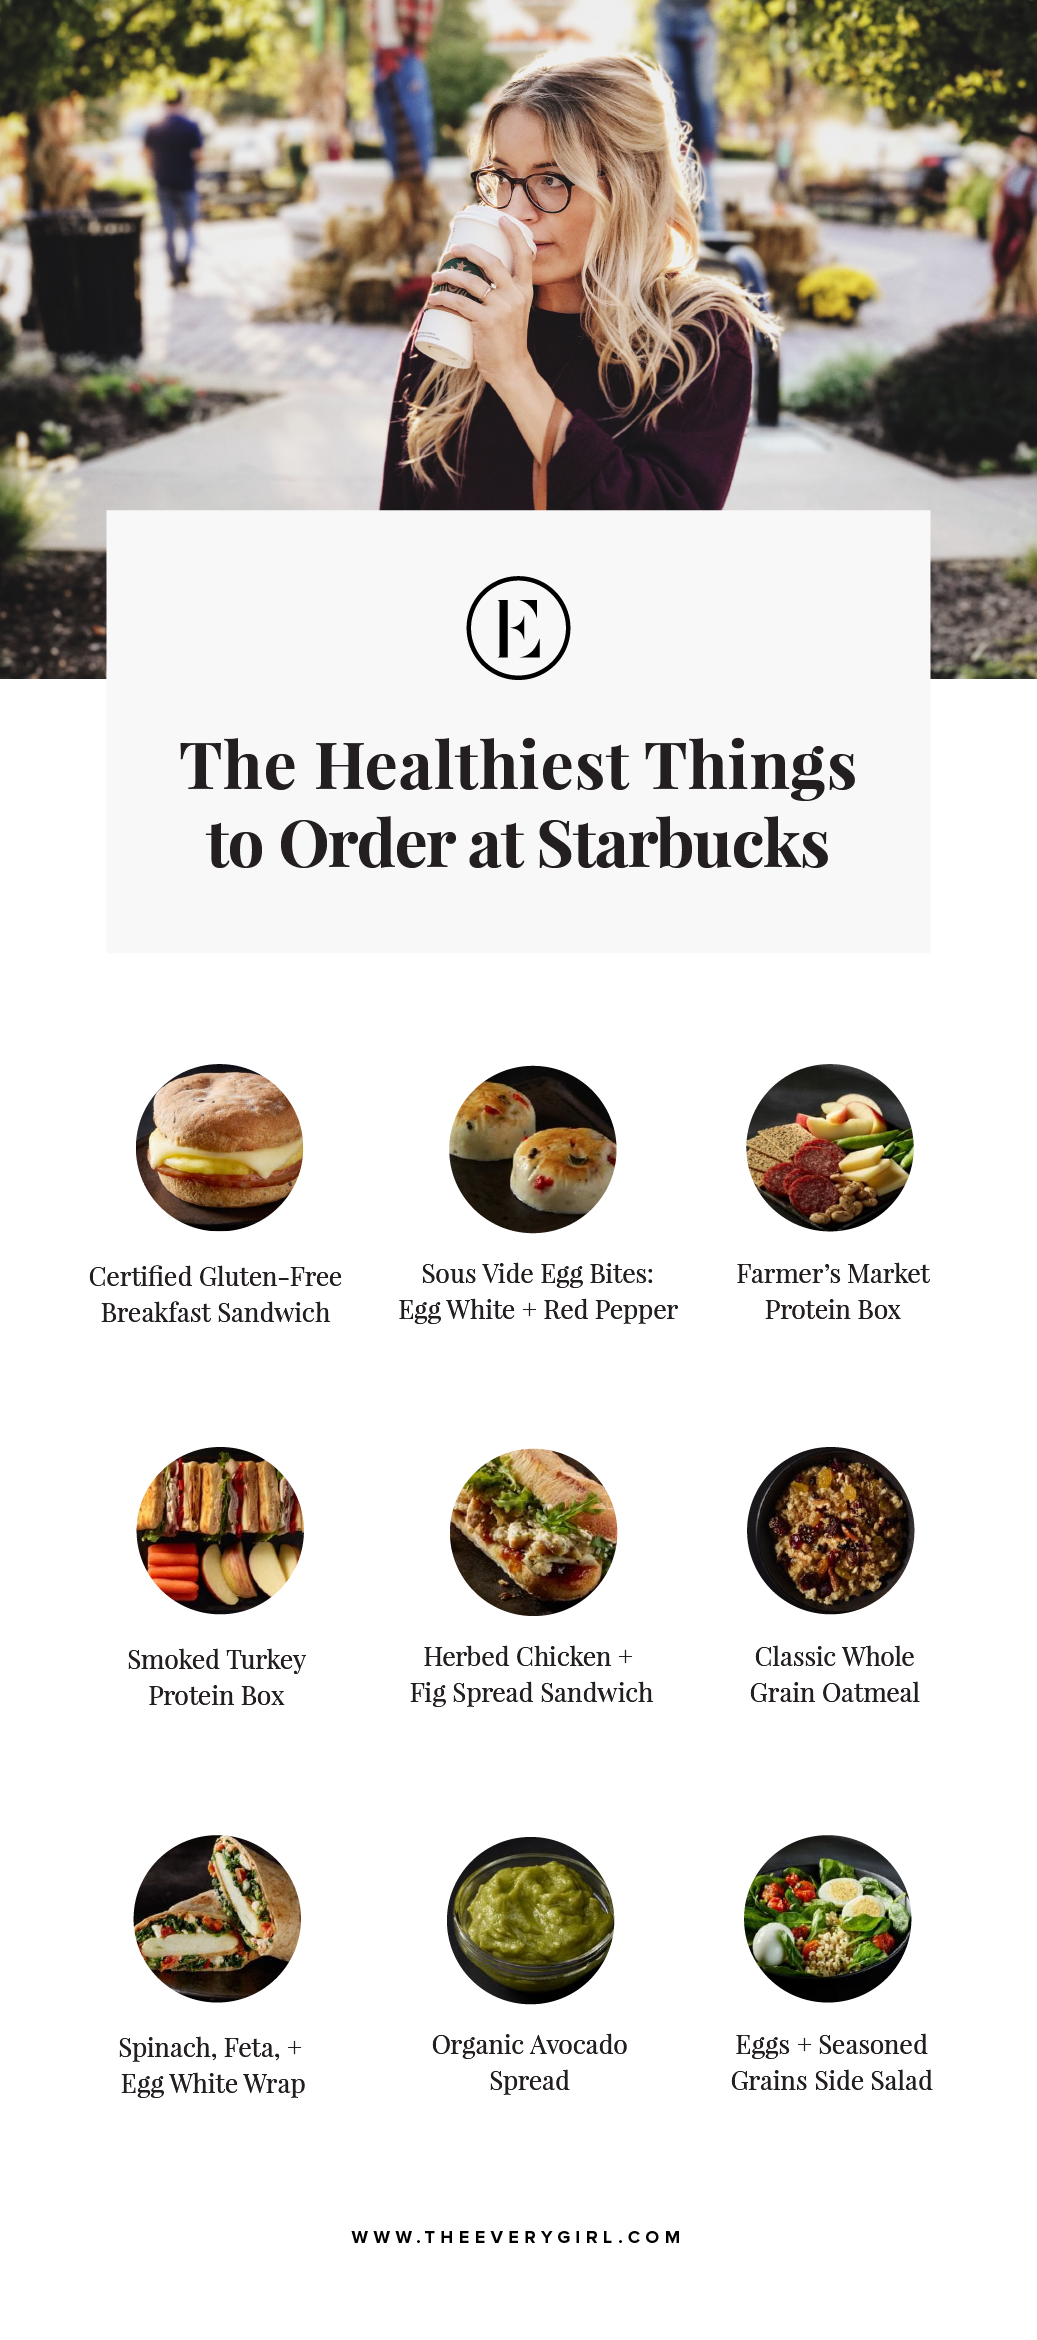 Healthiest Things to Order at Starbucks